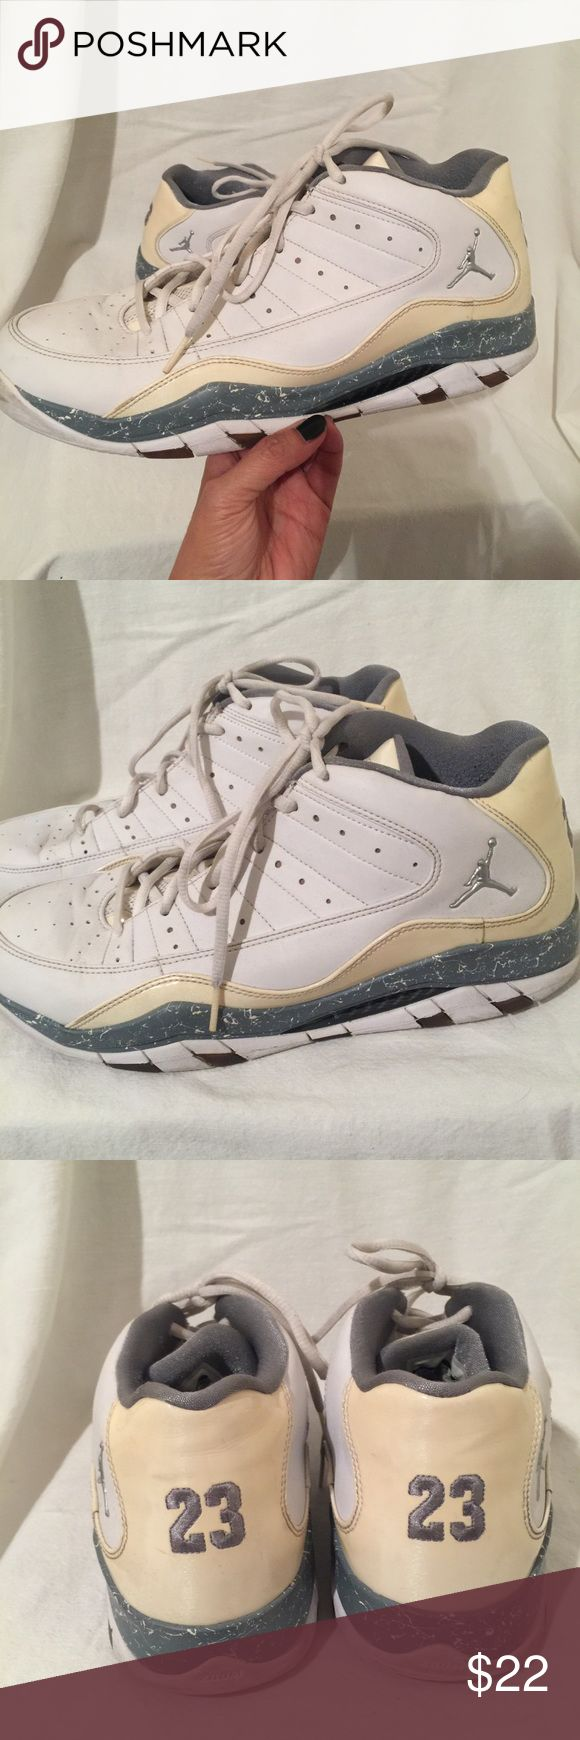 Men's Jordan Basketball Shoes Size 11.5 Preowned and in good condition. Men's size 11.5 Jordan Shoes Sneakers